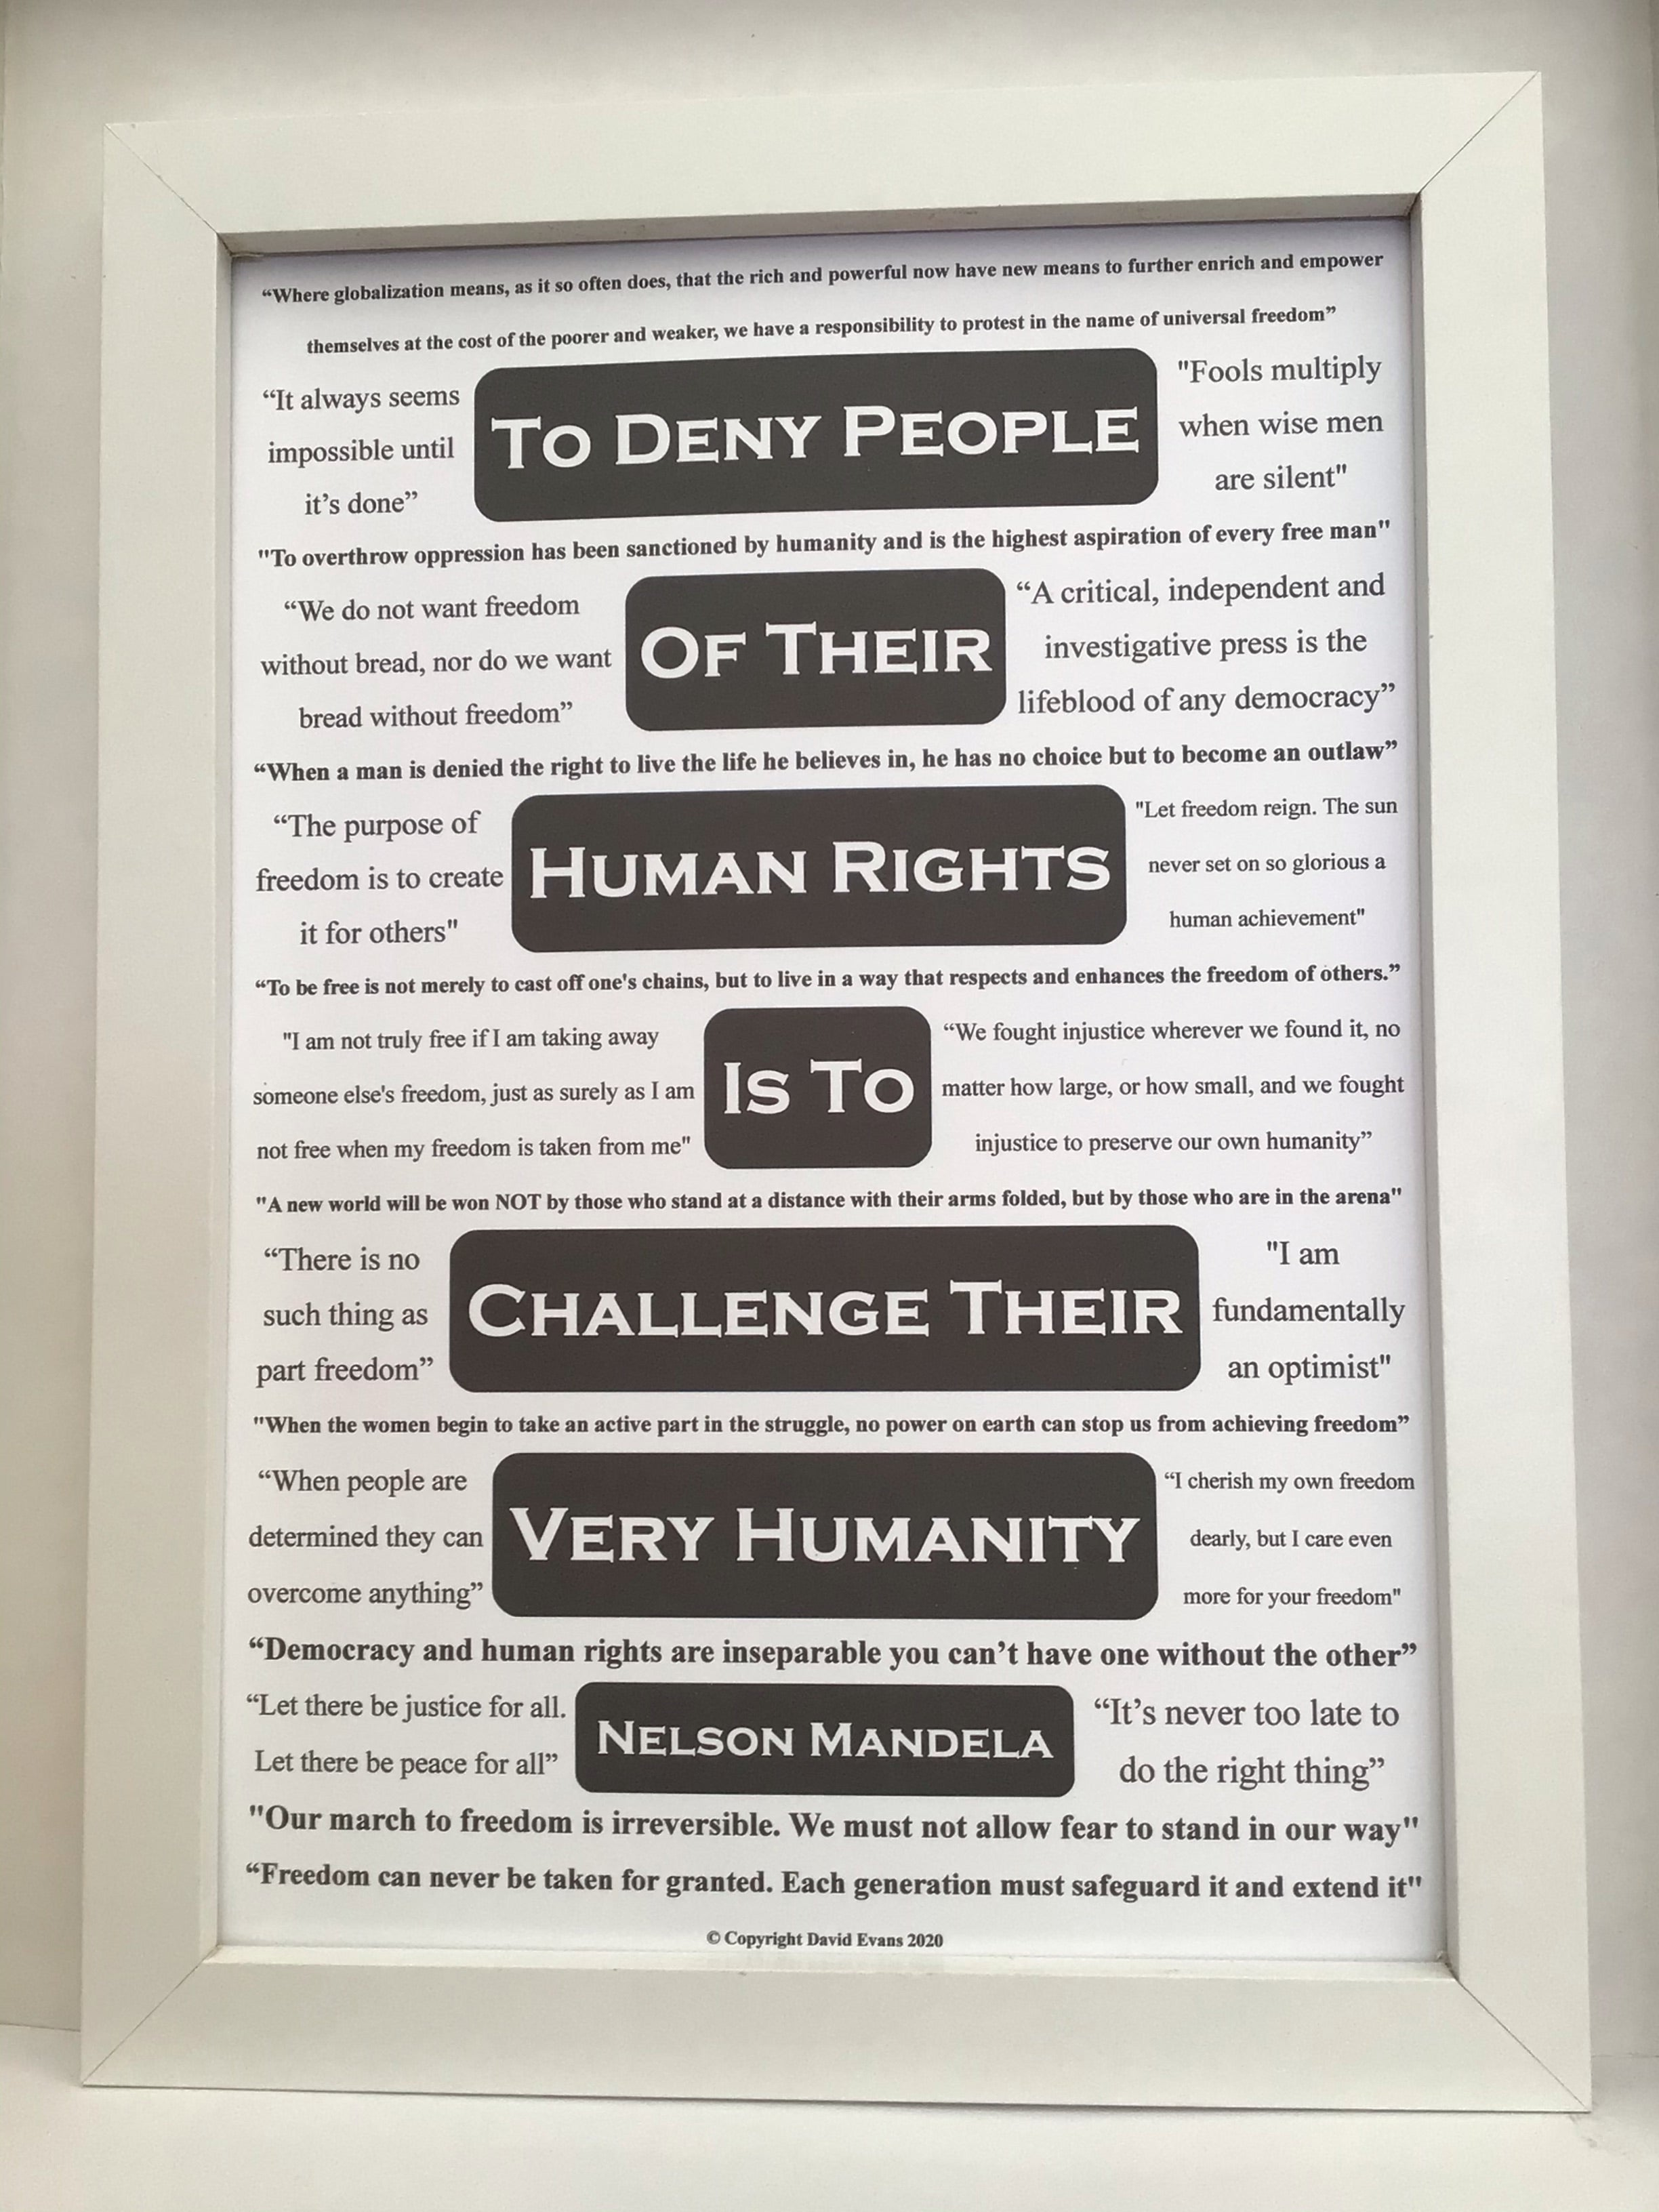 Inspirational poster featuring 24 relevant Nelson Mandela quotes about rights and freedoms